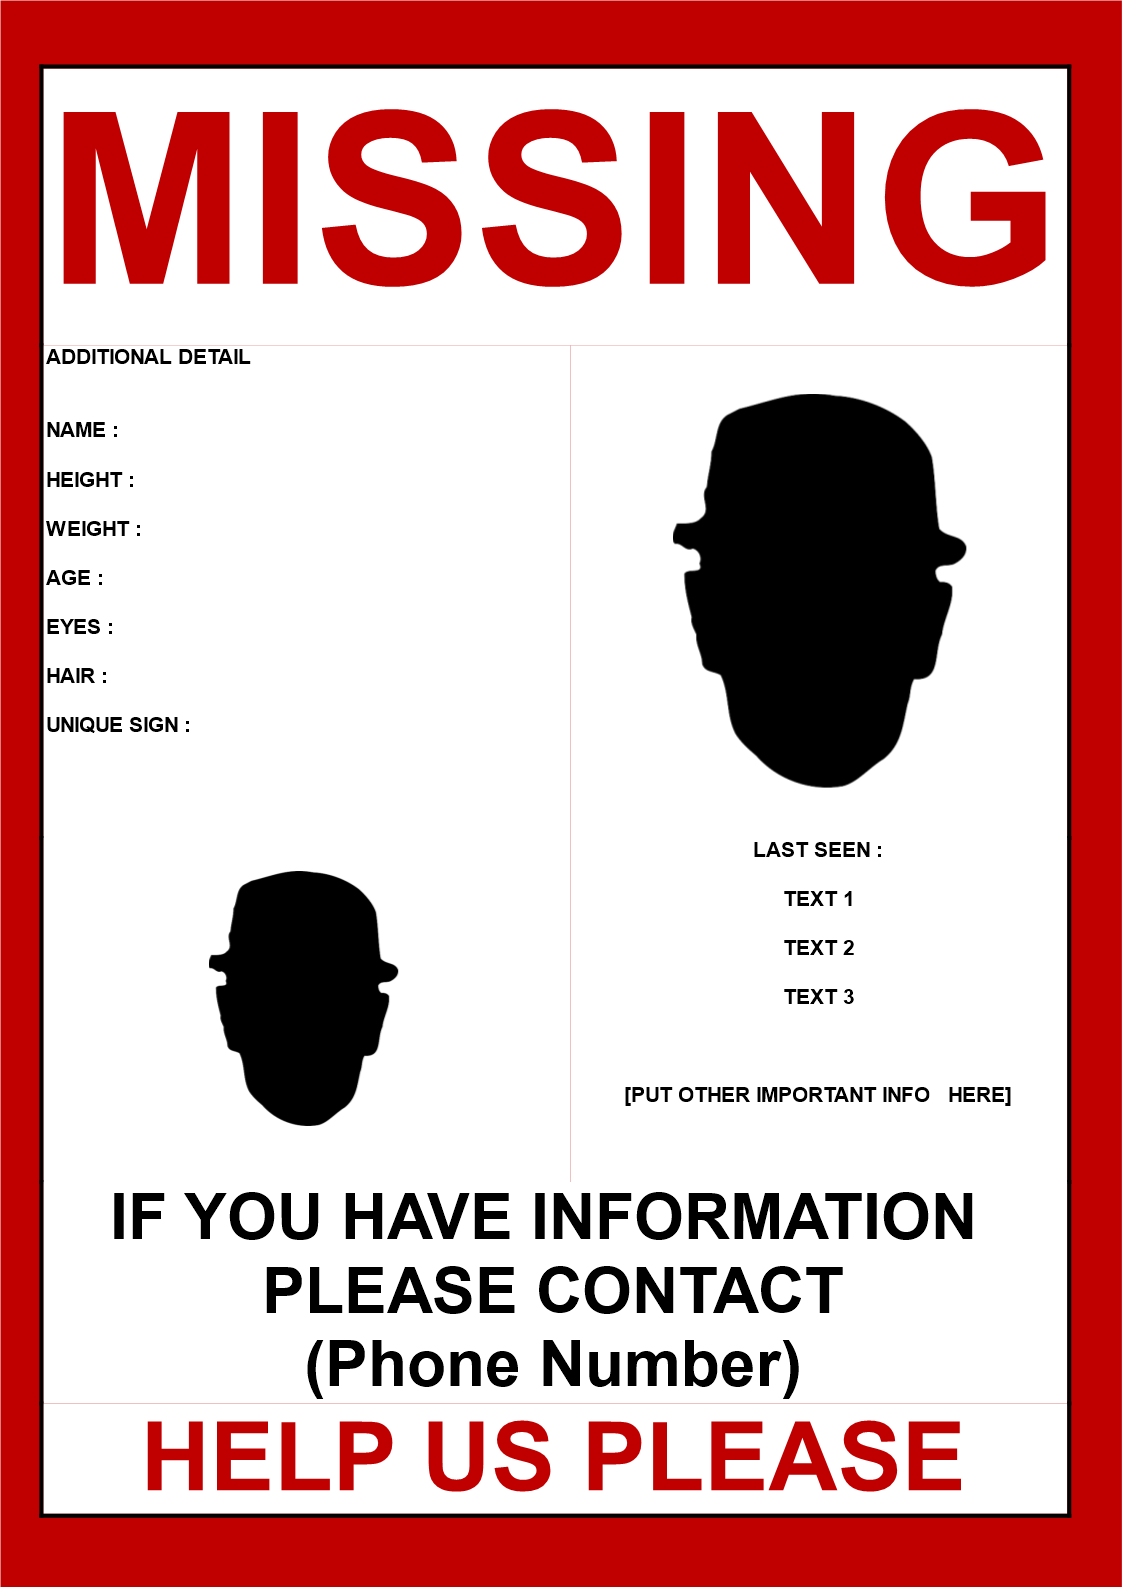 Nice Missing Persons Poster 10 Missing Person Poster Templates Excel Pdf  Formats, Missing Person Poster Released For Justin Johnson The Lewis,  Missing Person ...  Missing Persons Poster Template